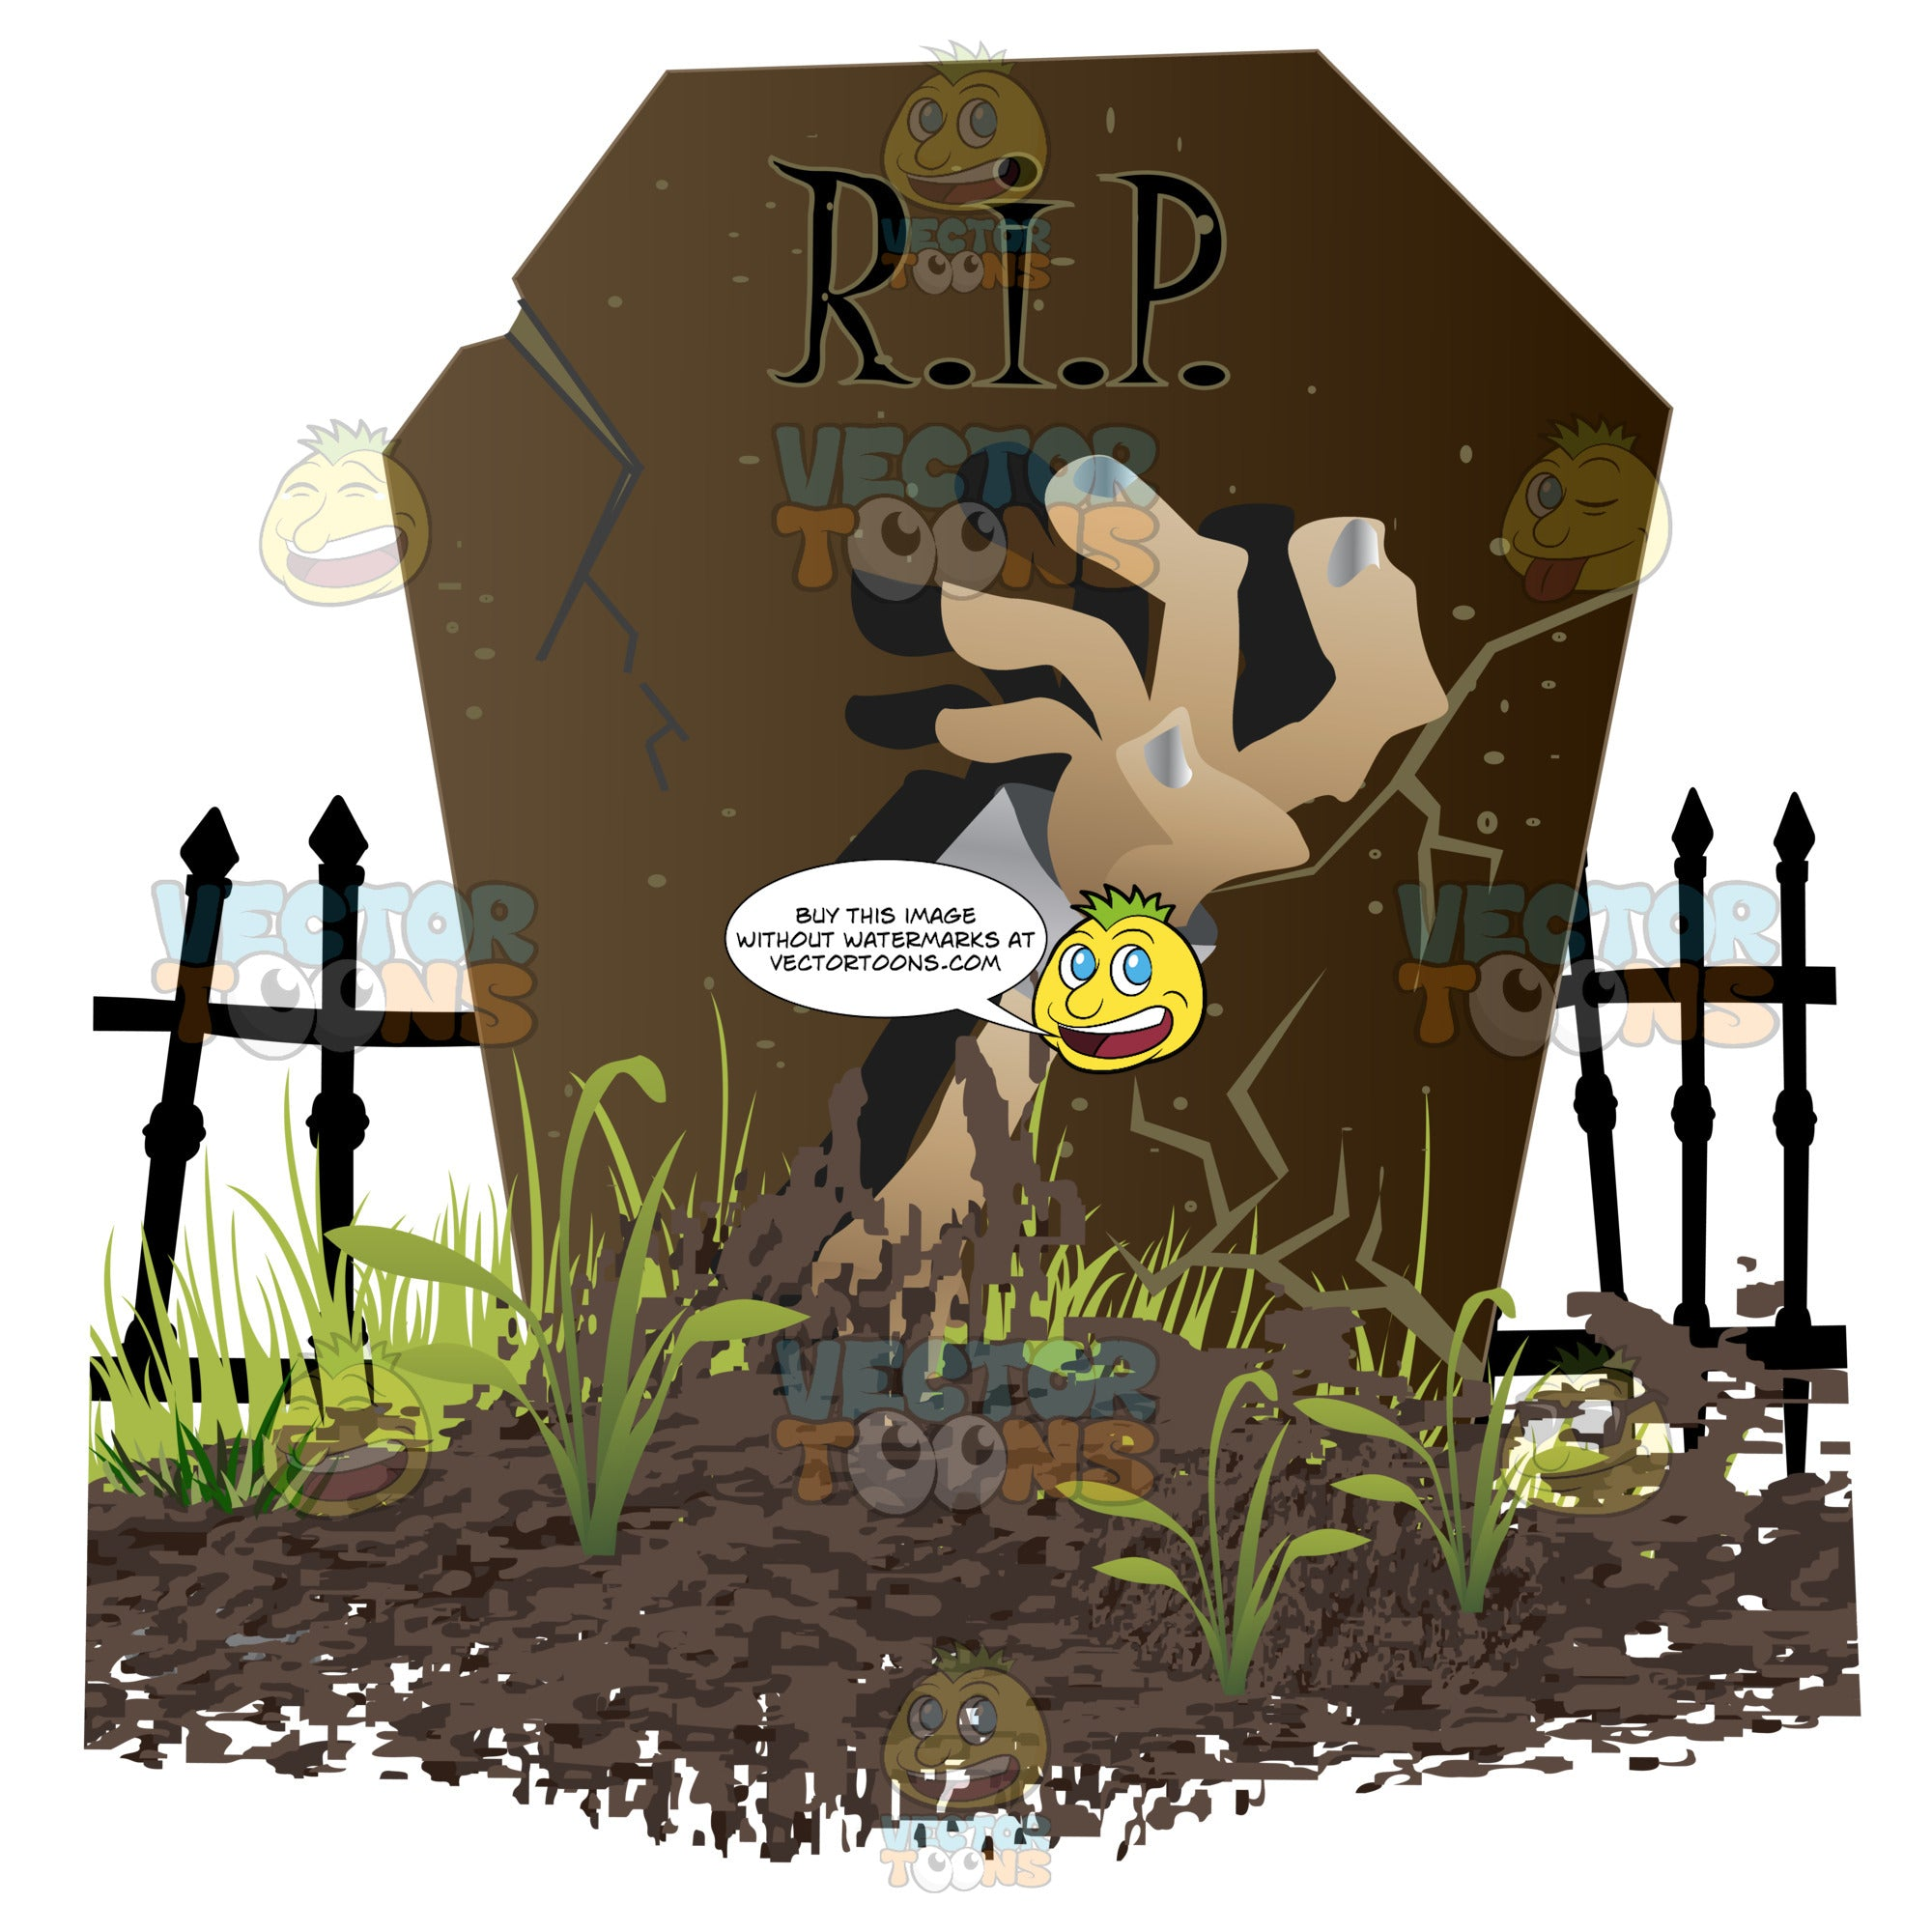 Undead Hand Rising From Out Of Dirt In Front Of Grave Stone With 'R.i.p.' With Wrought Iron Gate In Background